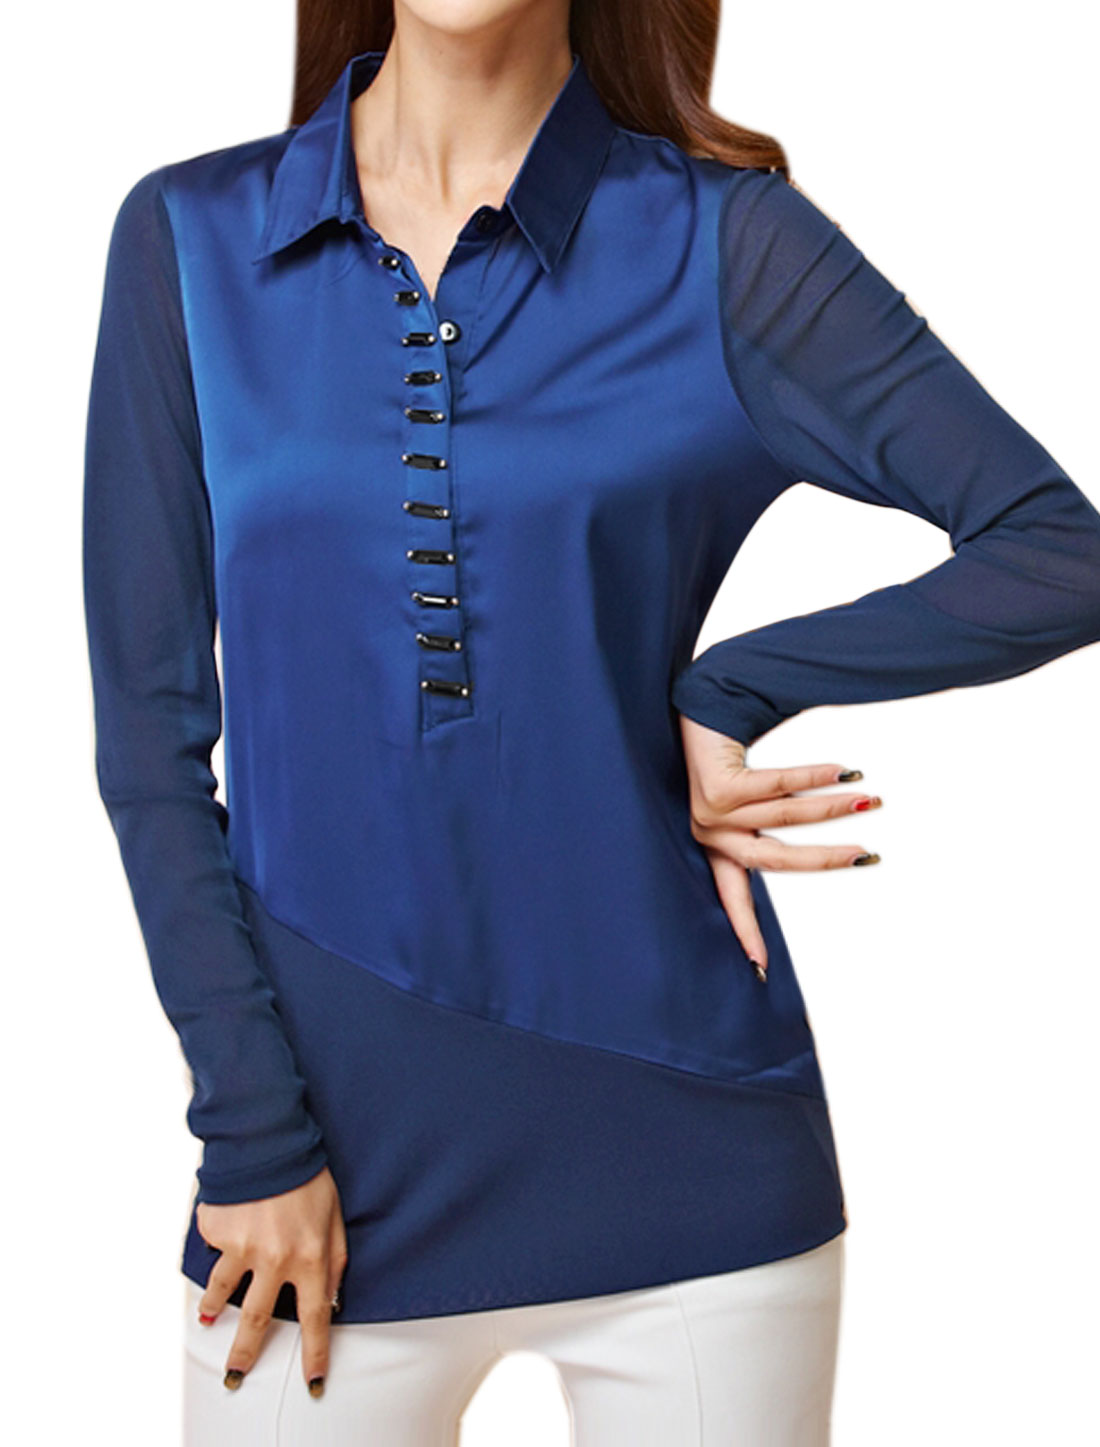 Women Beaded Button Closure Slim Fit Mesh Tunic Top Blue M